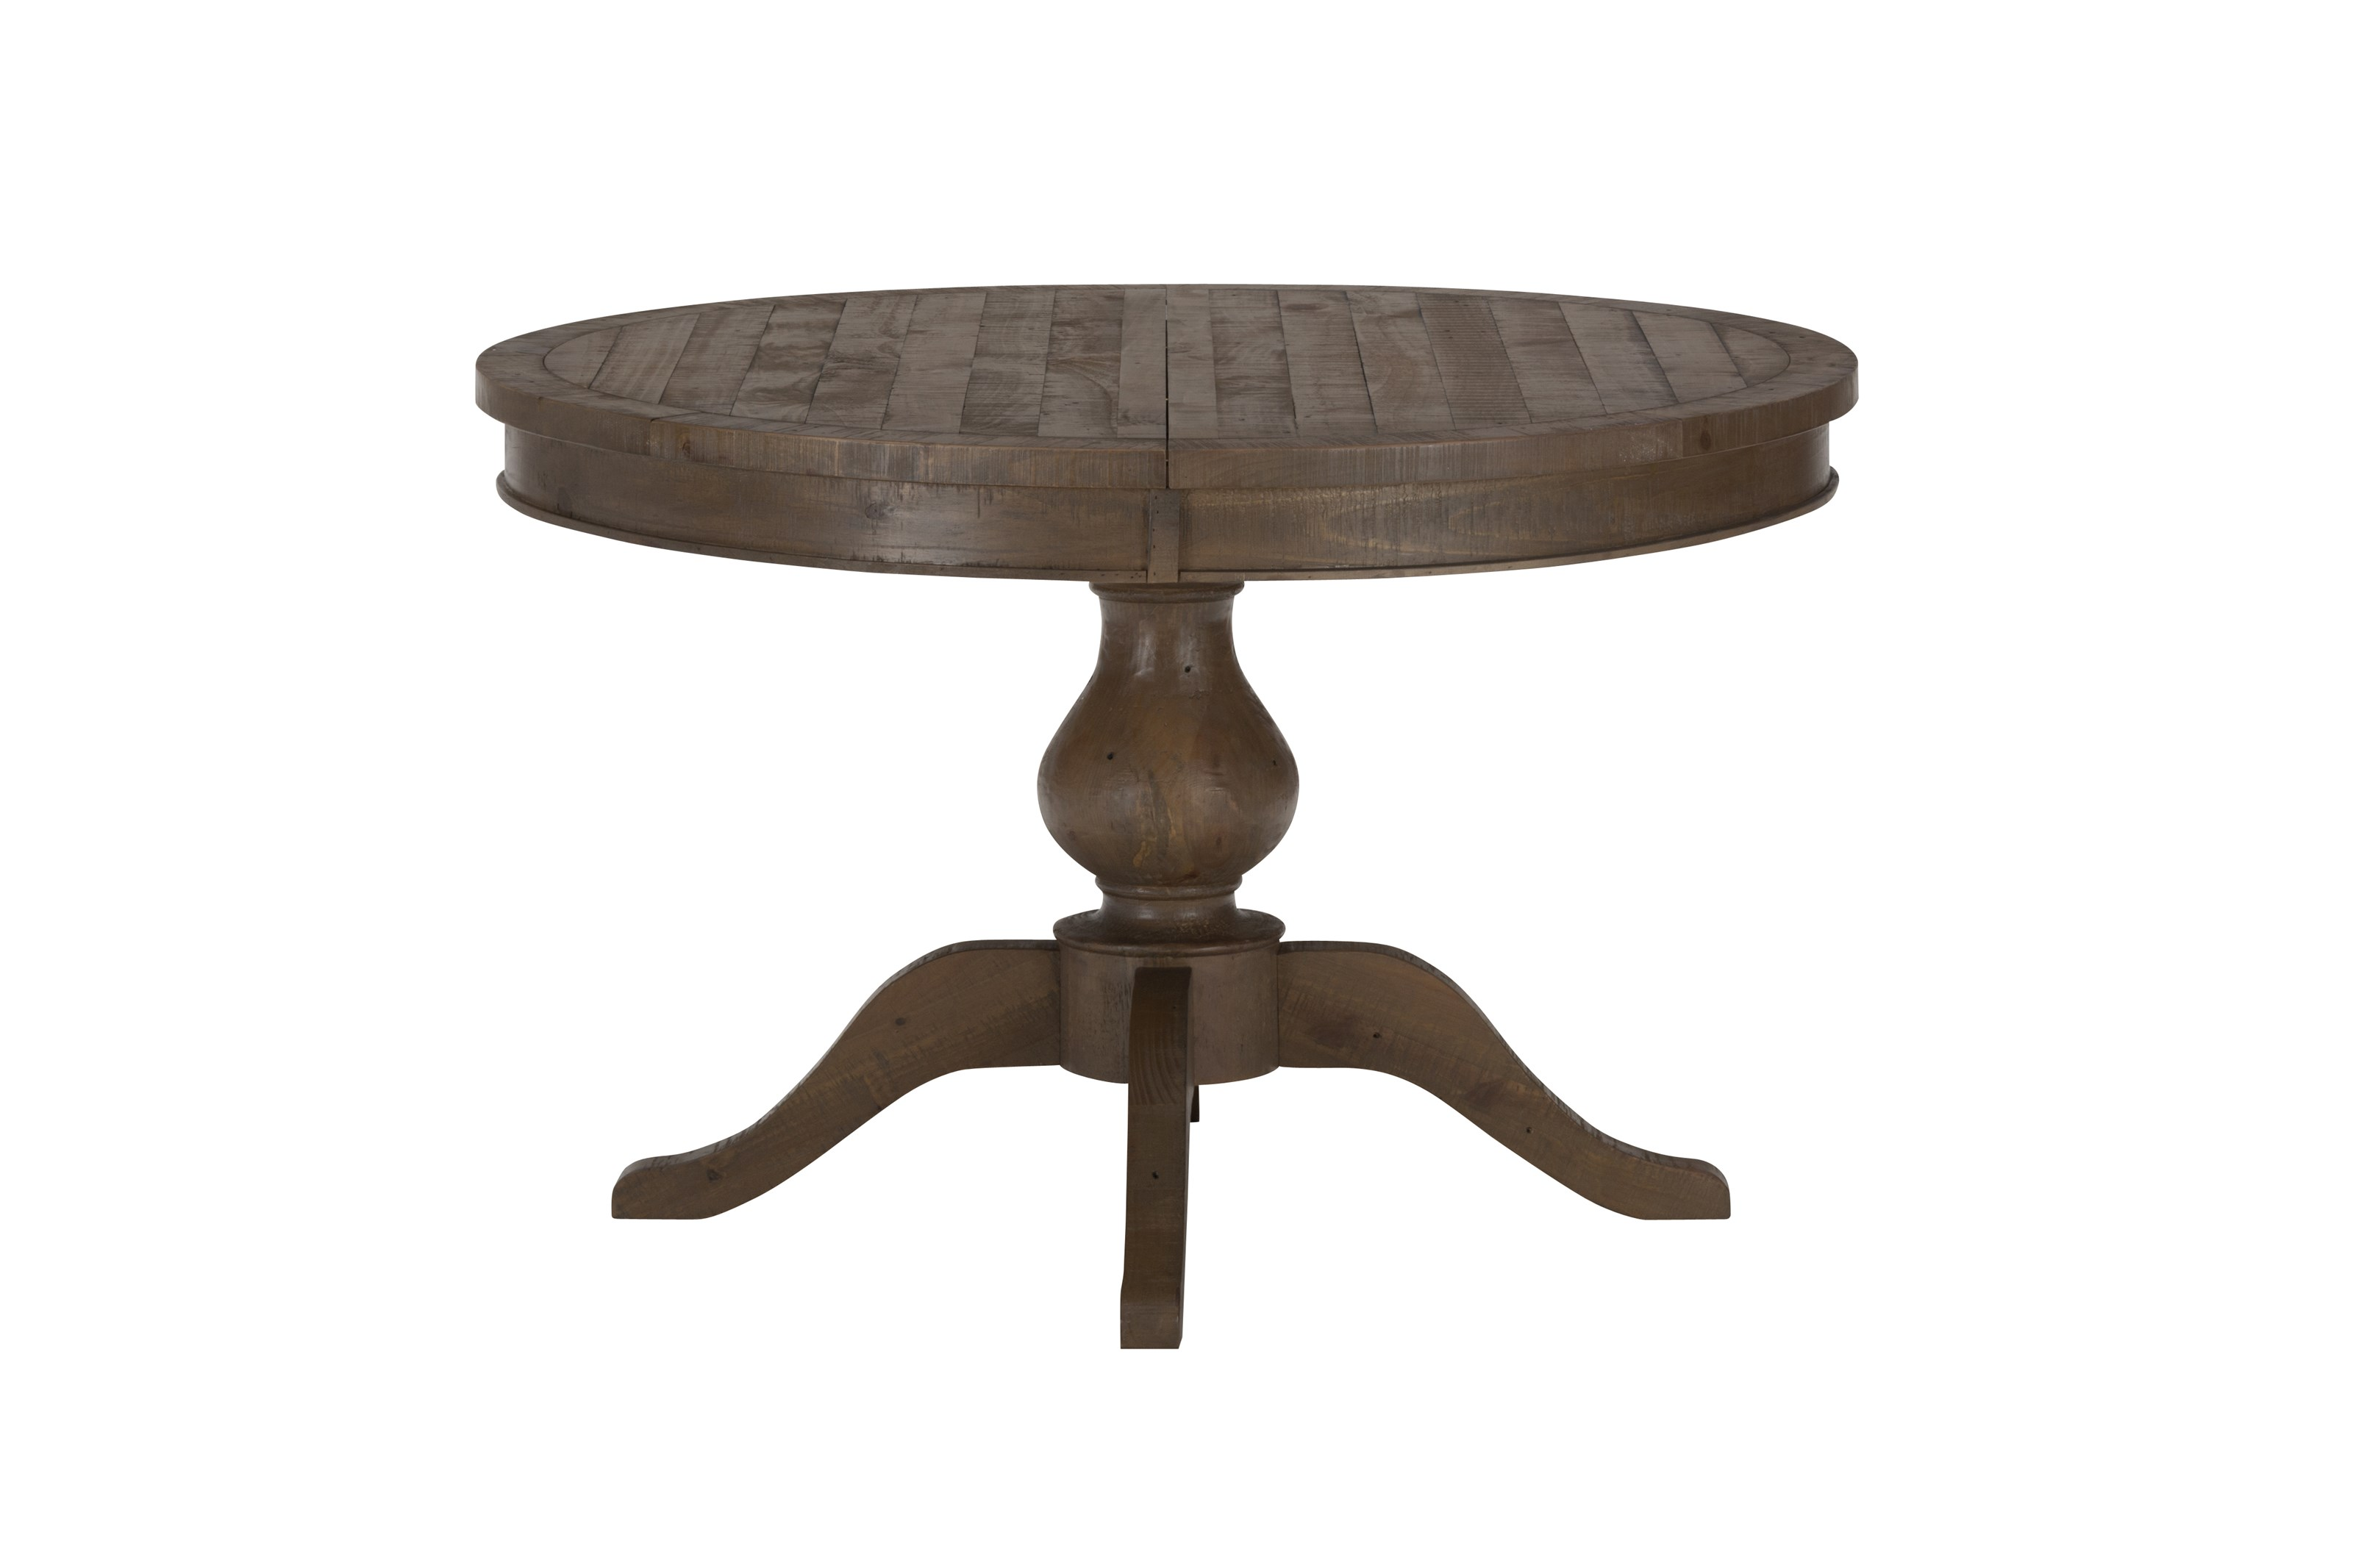 jofran slater mill pine reclaimed round oval dining table products color small accent coconis furniture mattress tables safavieh couture patio and chairs pedestal end outdoor